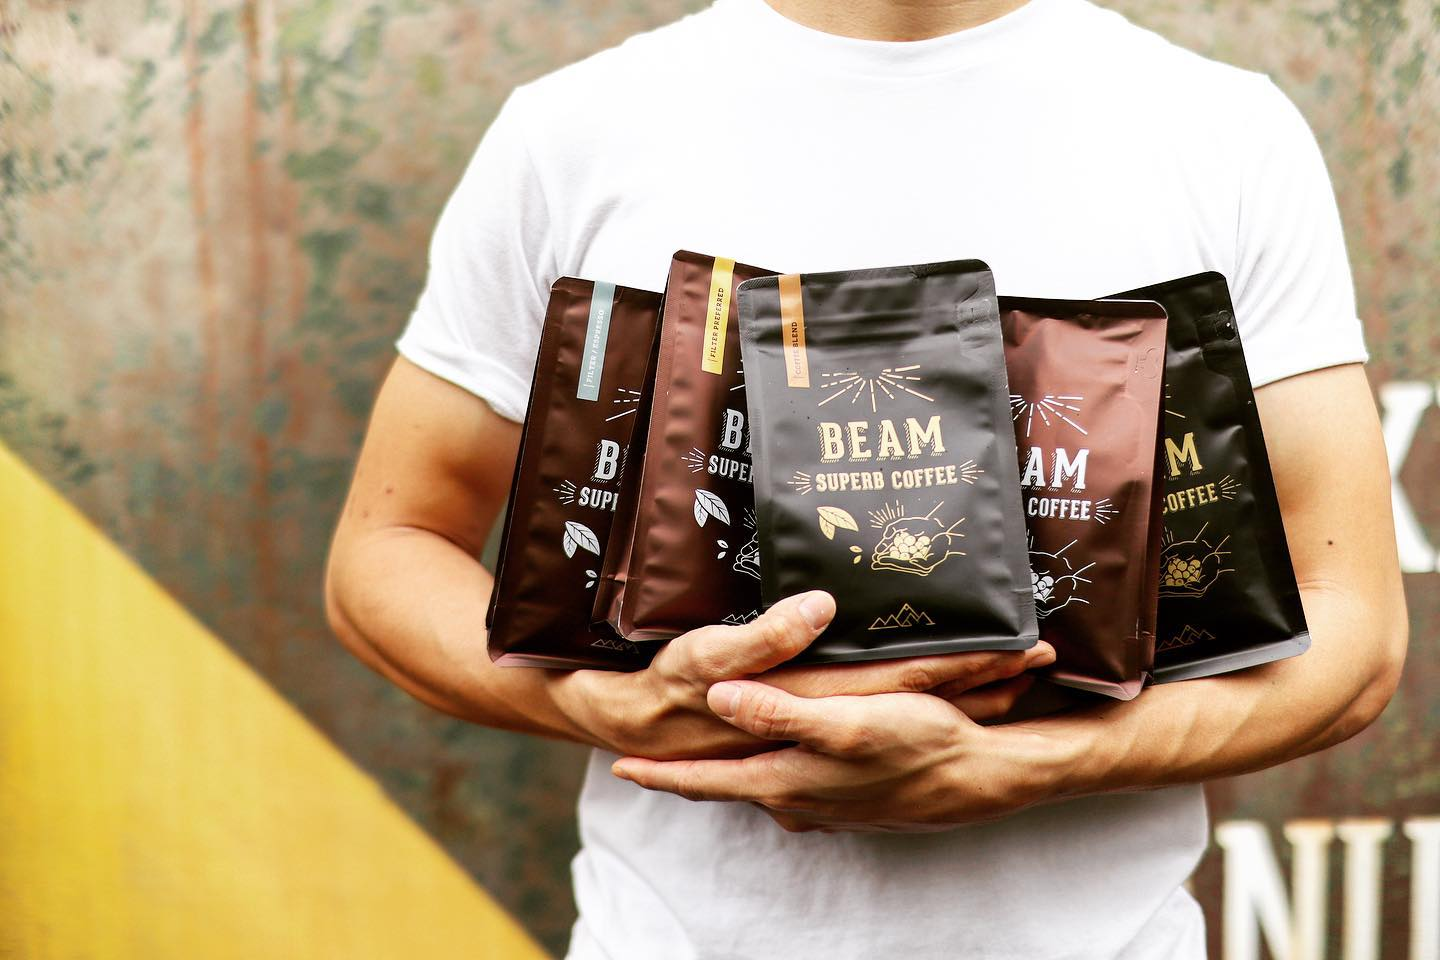 a man cradling a few bags of coffee beans